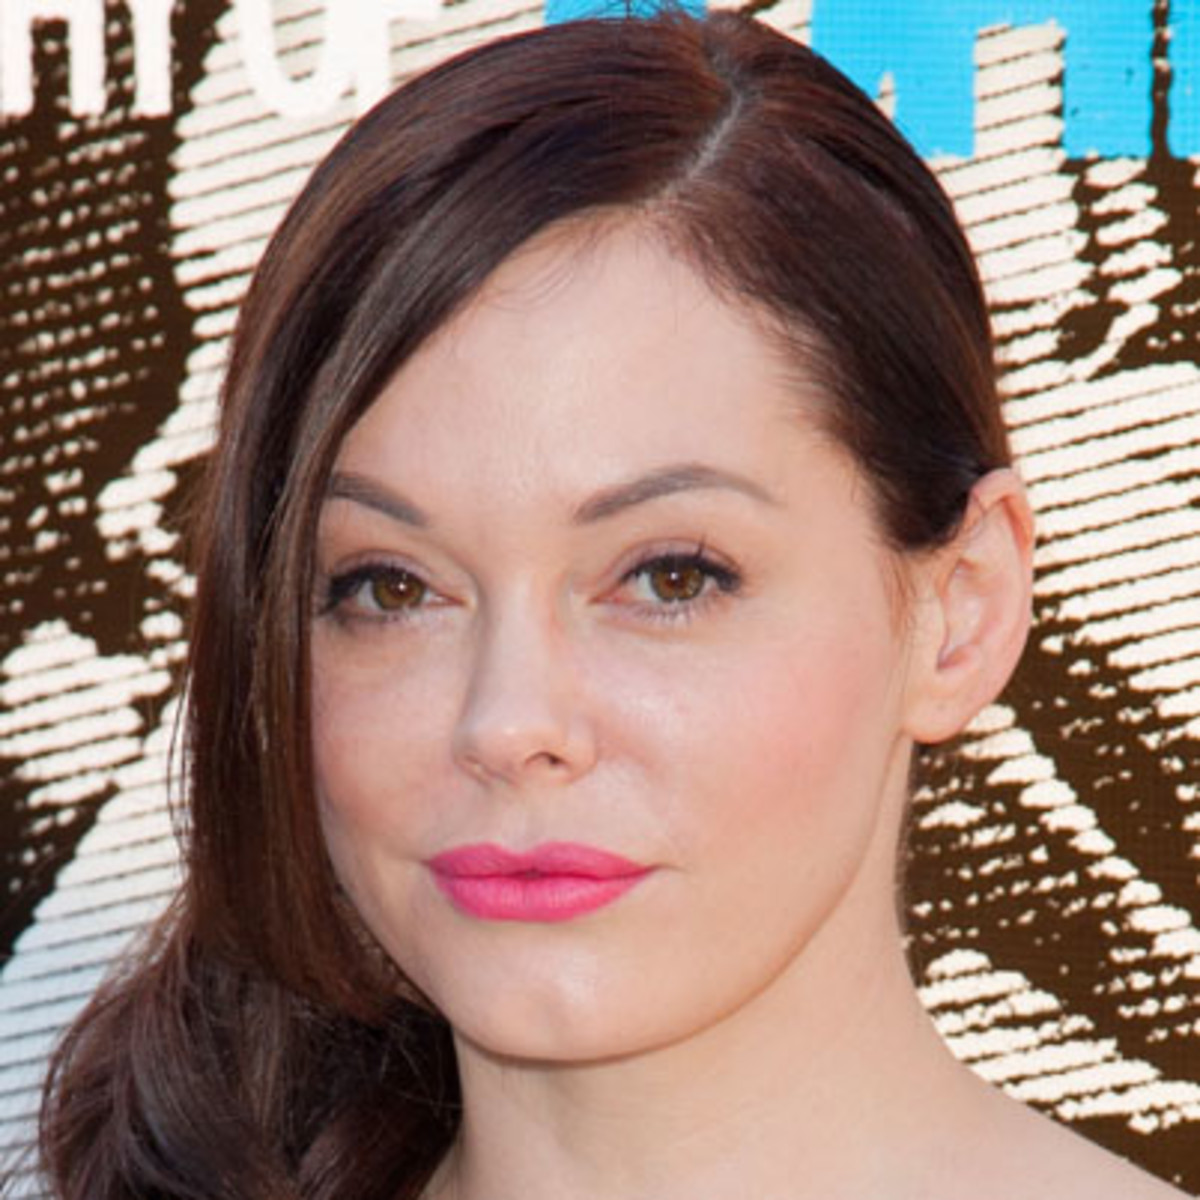 Rose McGowan (born 1973 (American actress born in Florence, Italy)